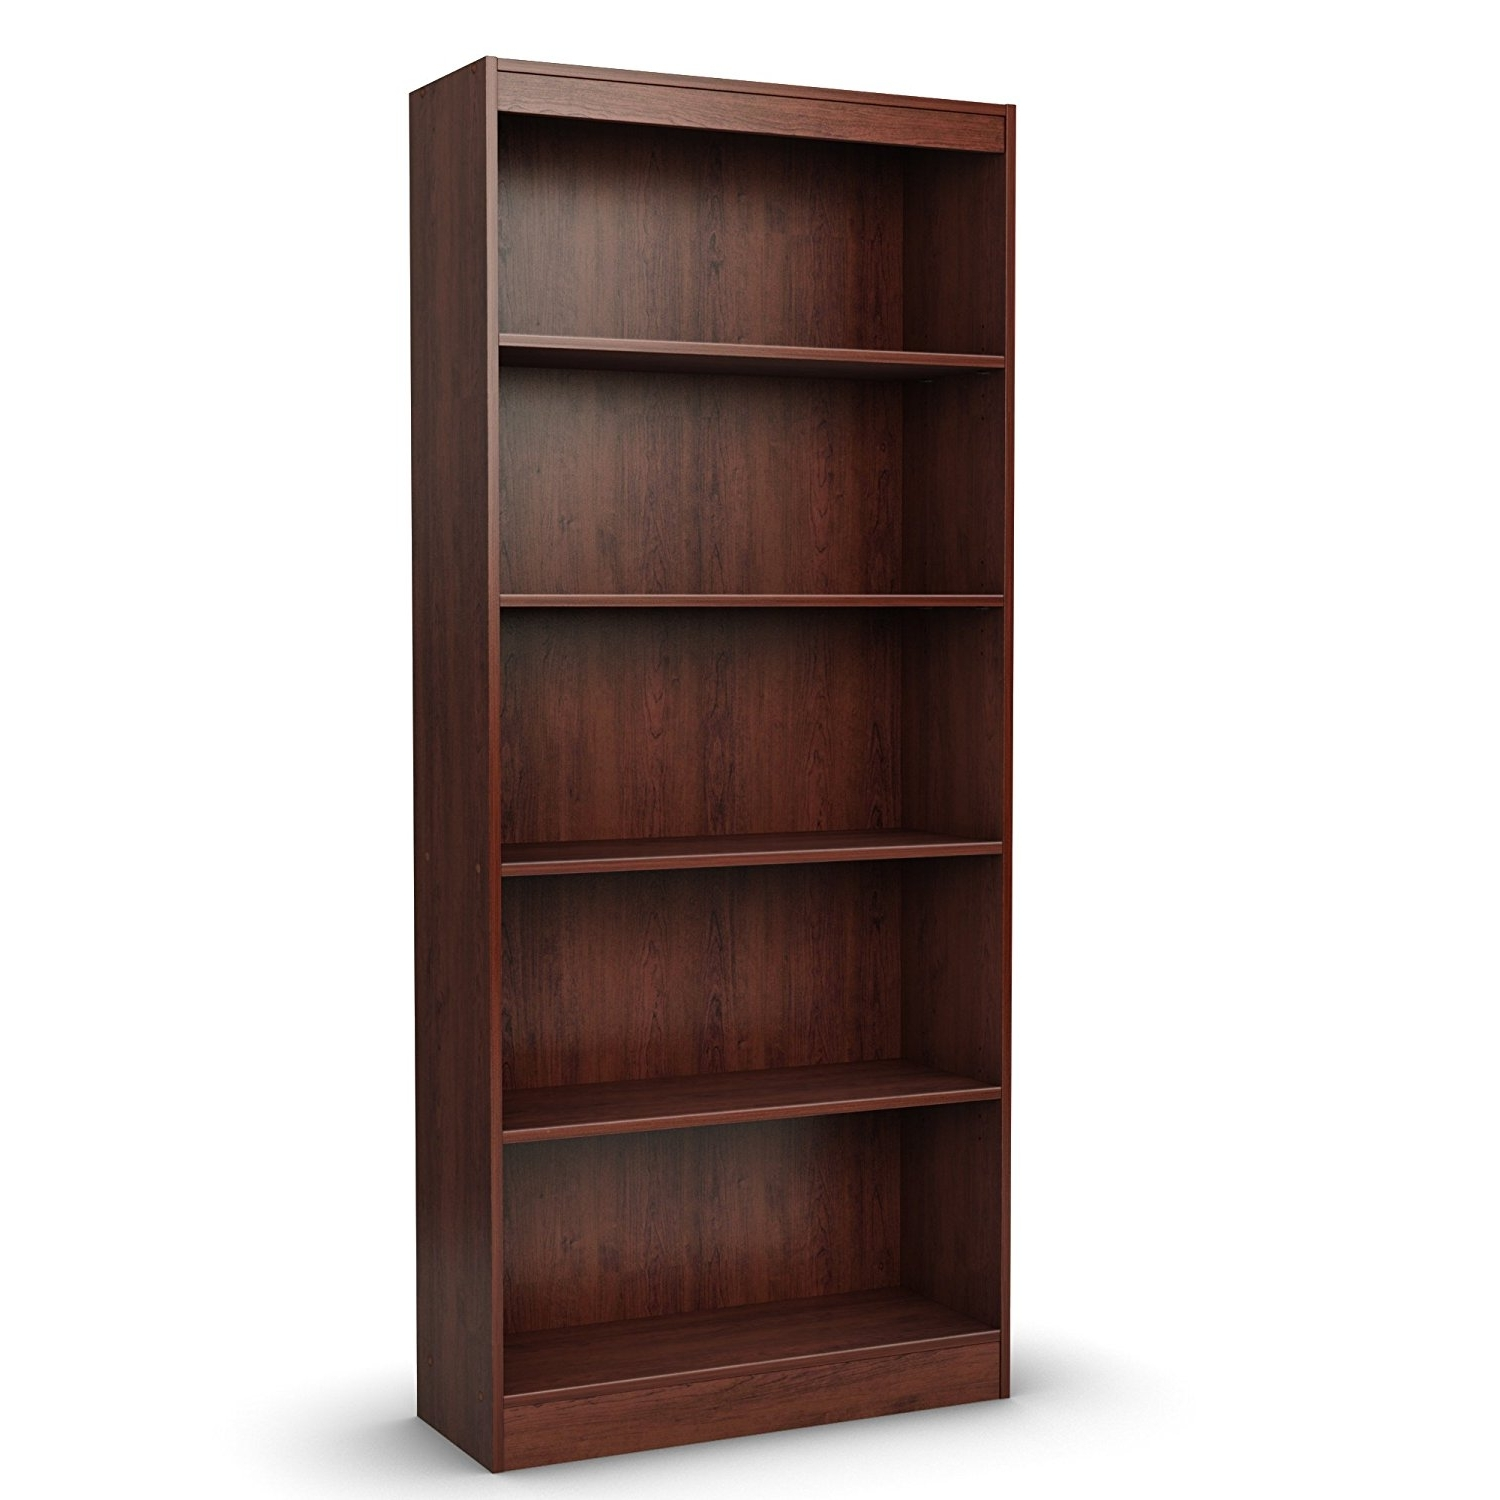 Most Popular Amazon: South Shore Axess Collection 5 Shelf Bookcase, Royal With Regard To Wood Bookcases (View 5 of 15)